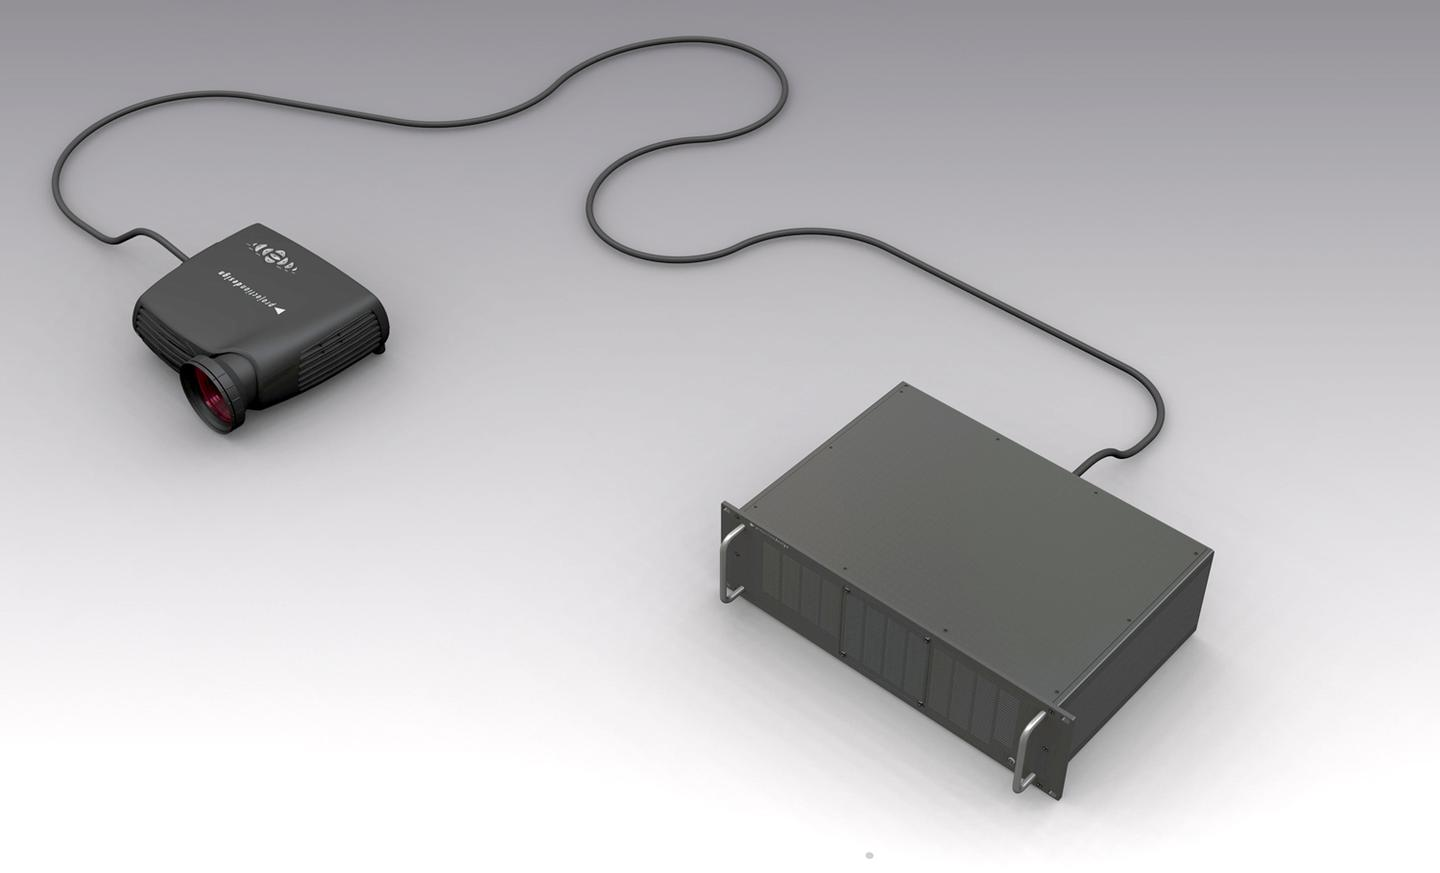 Projectiondesign's FR12 projector has a lamp that can be located up to 30m from the projector head, resulting in zero noise and heat at the viewing area and easier lamp replacements